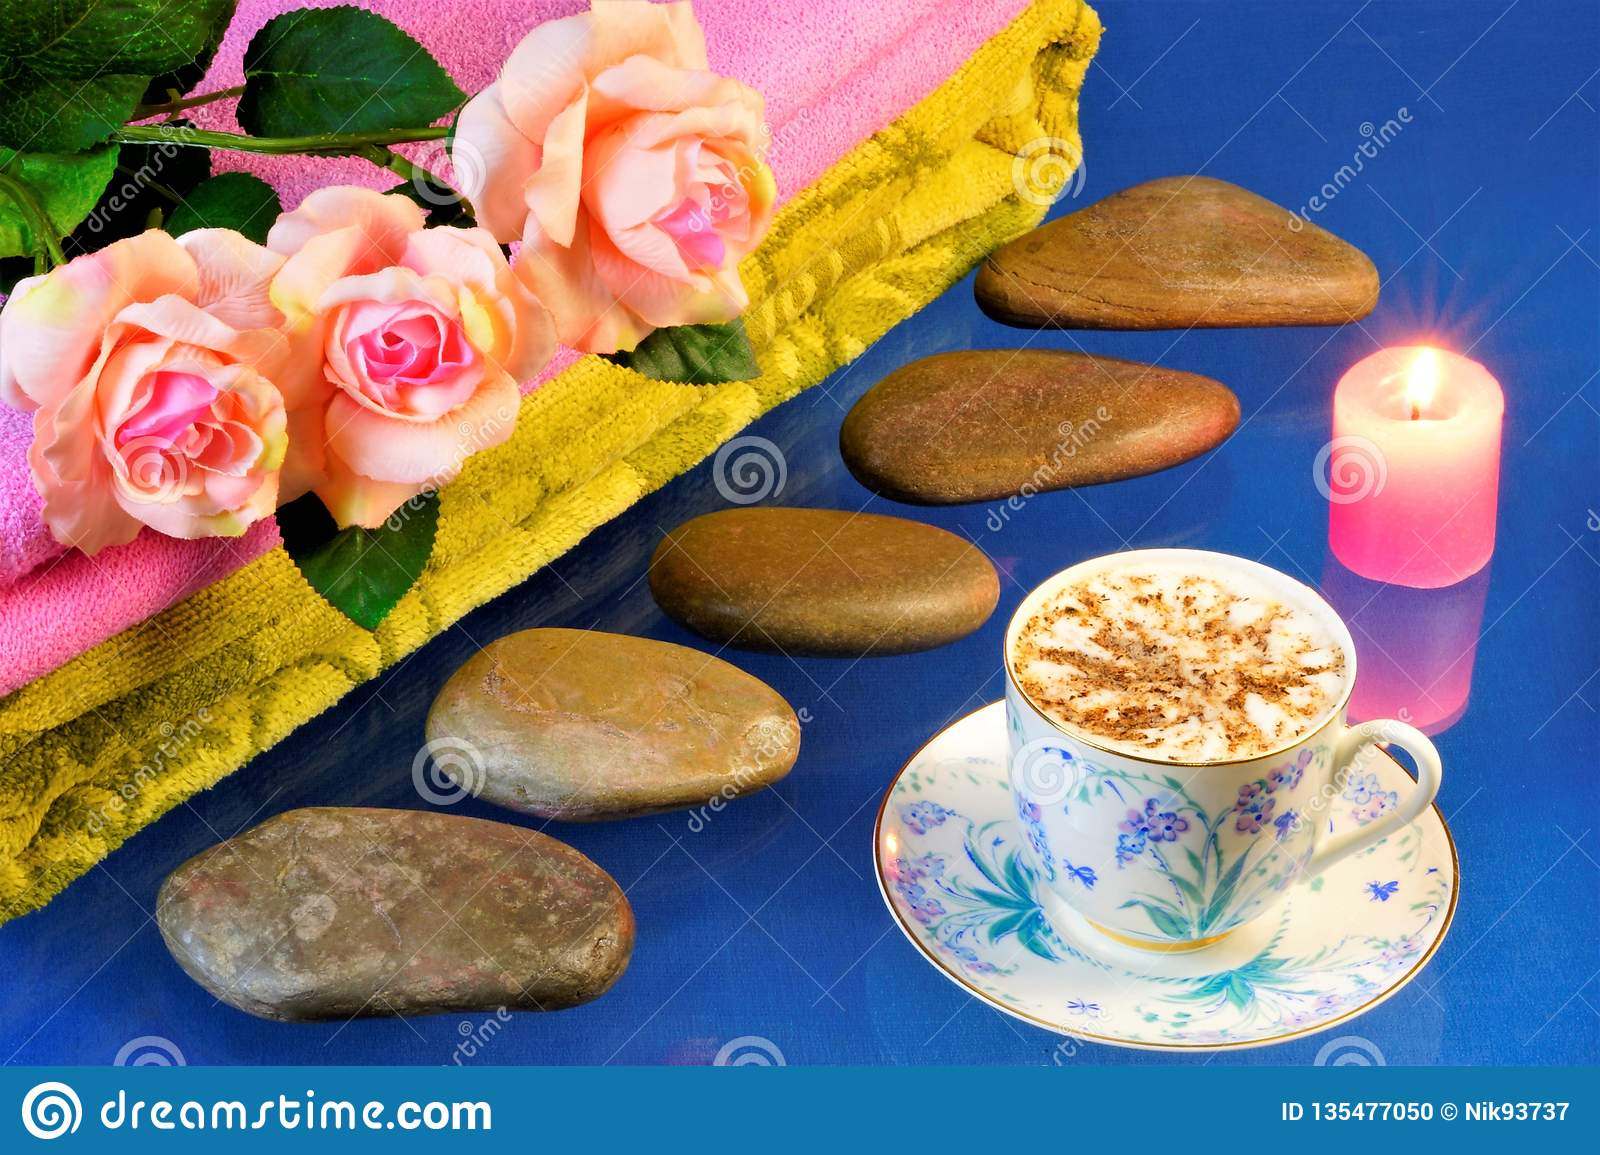 Spa stones, beautiful roses, candle and coffee. Hot stone massage-stone therapy, effective treatment for many diseases. On a blue